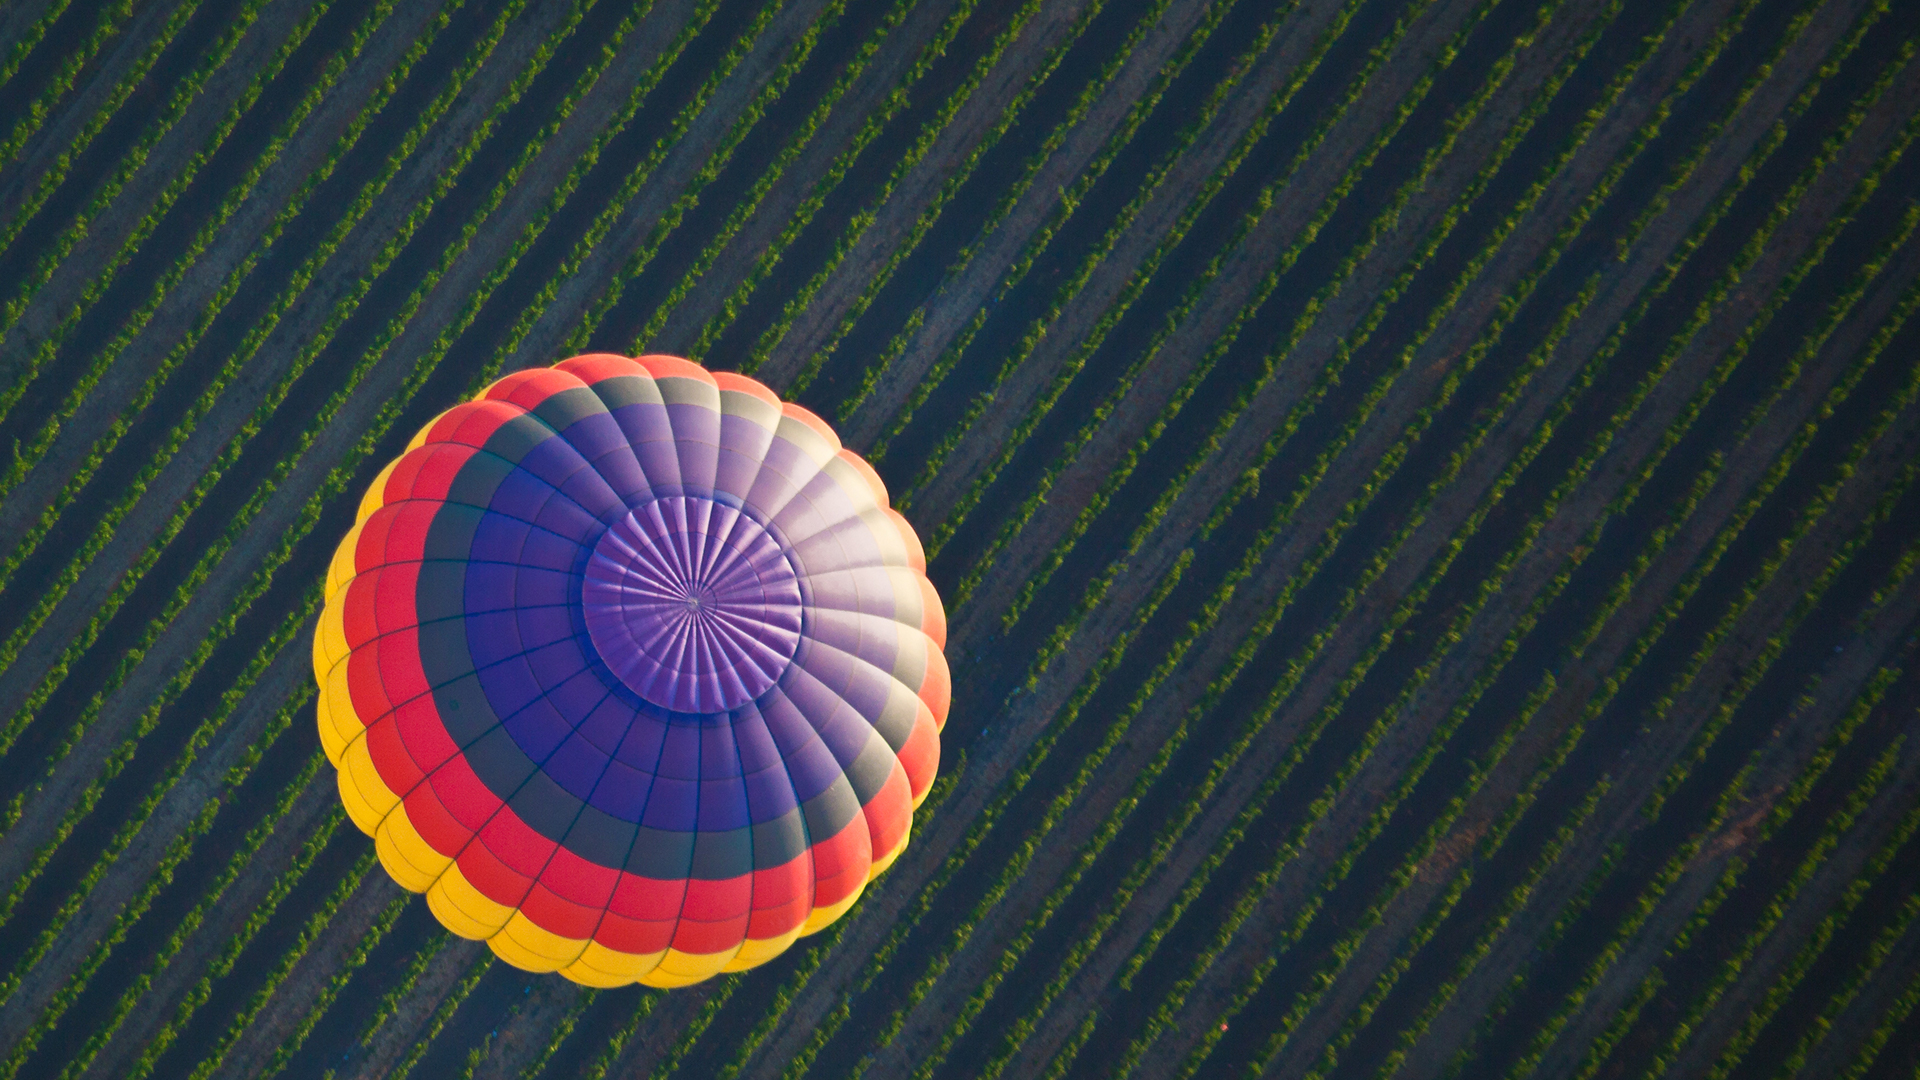 Hot air balloon over a vineyard in Yountville